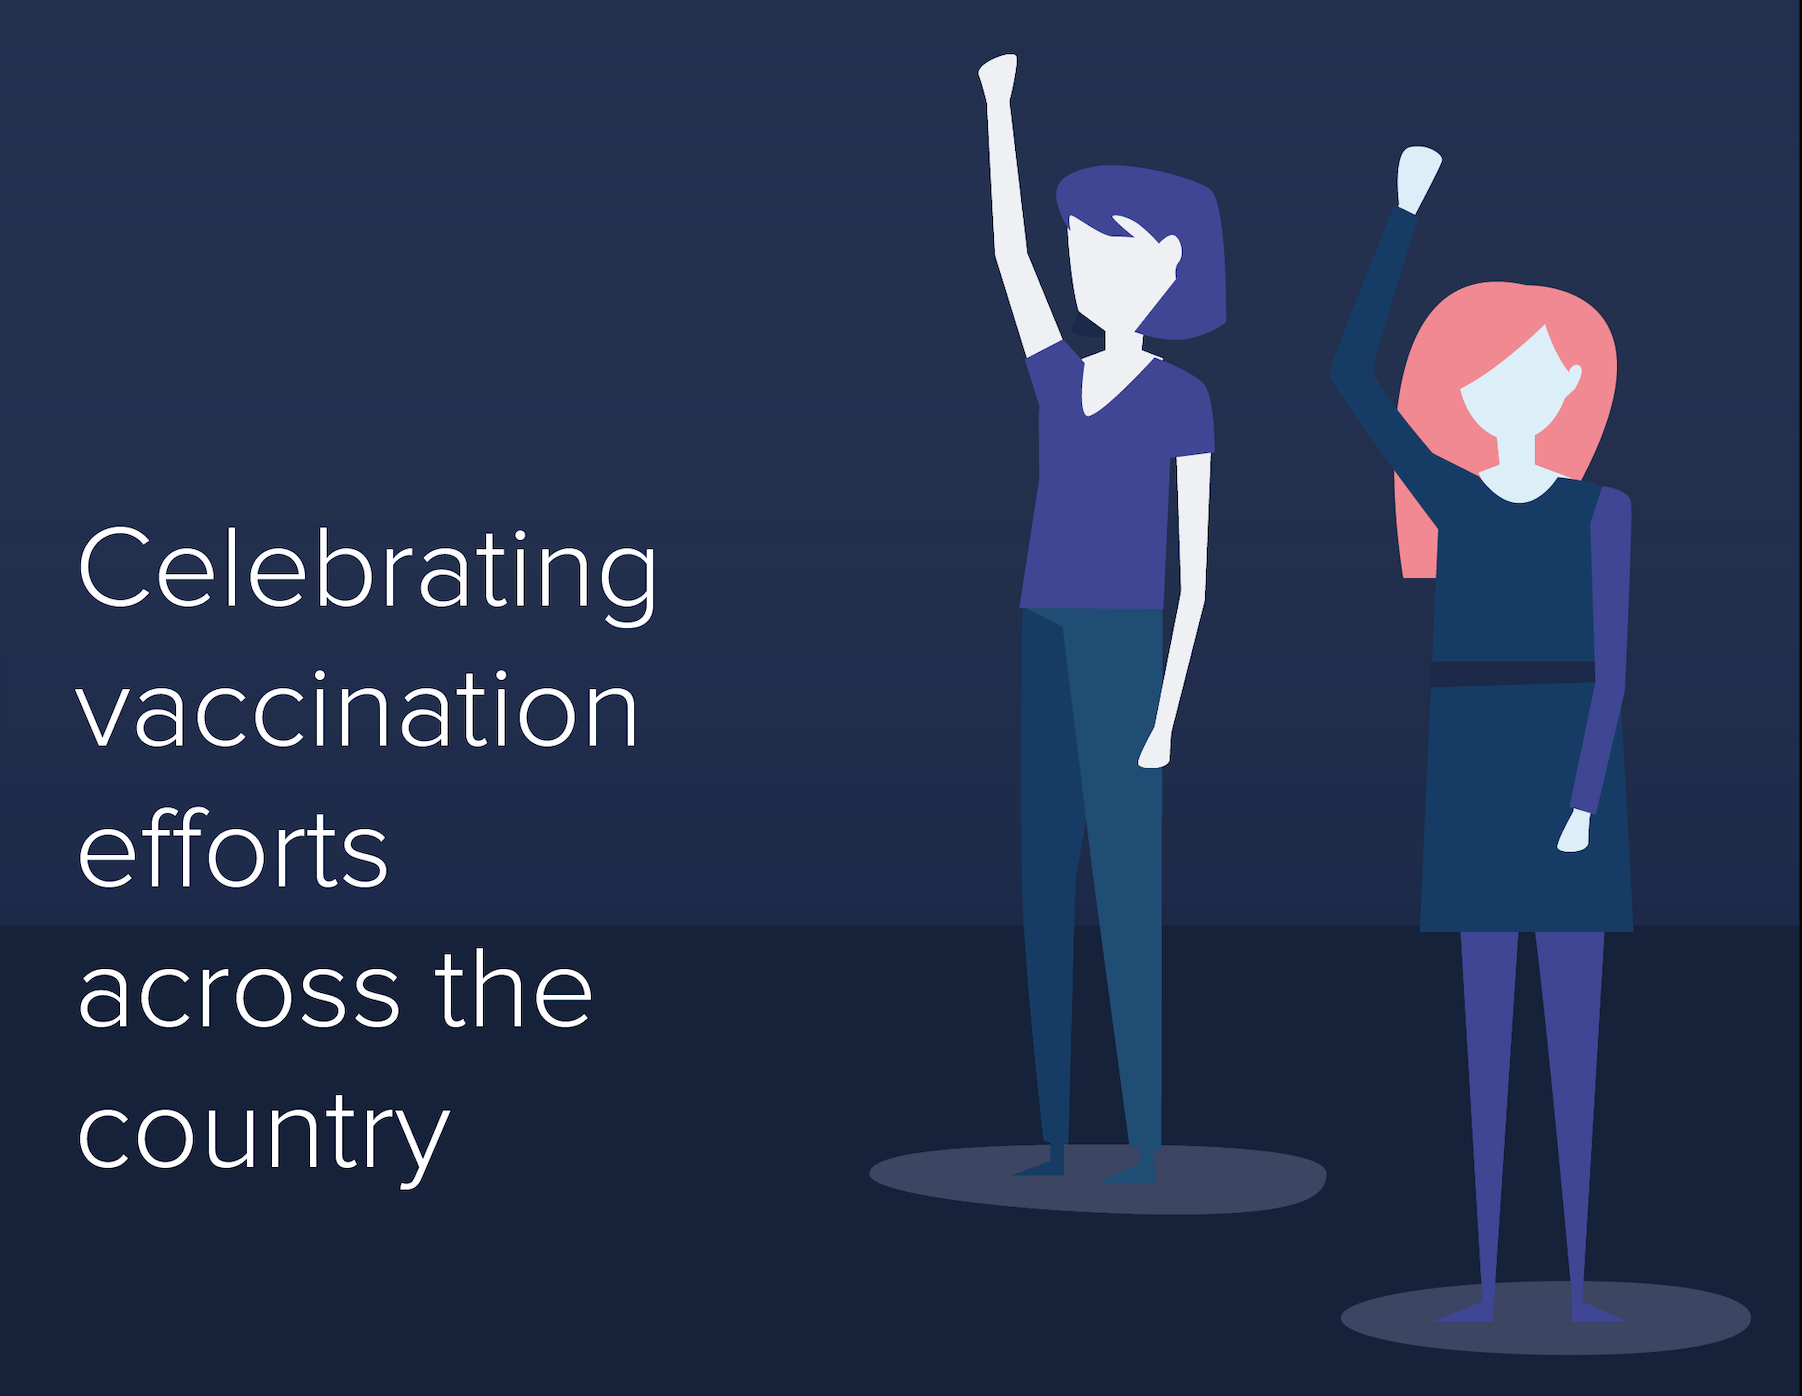 Celebrating vaccination efforts across the country